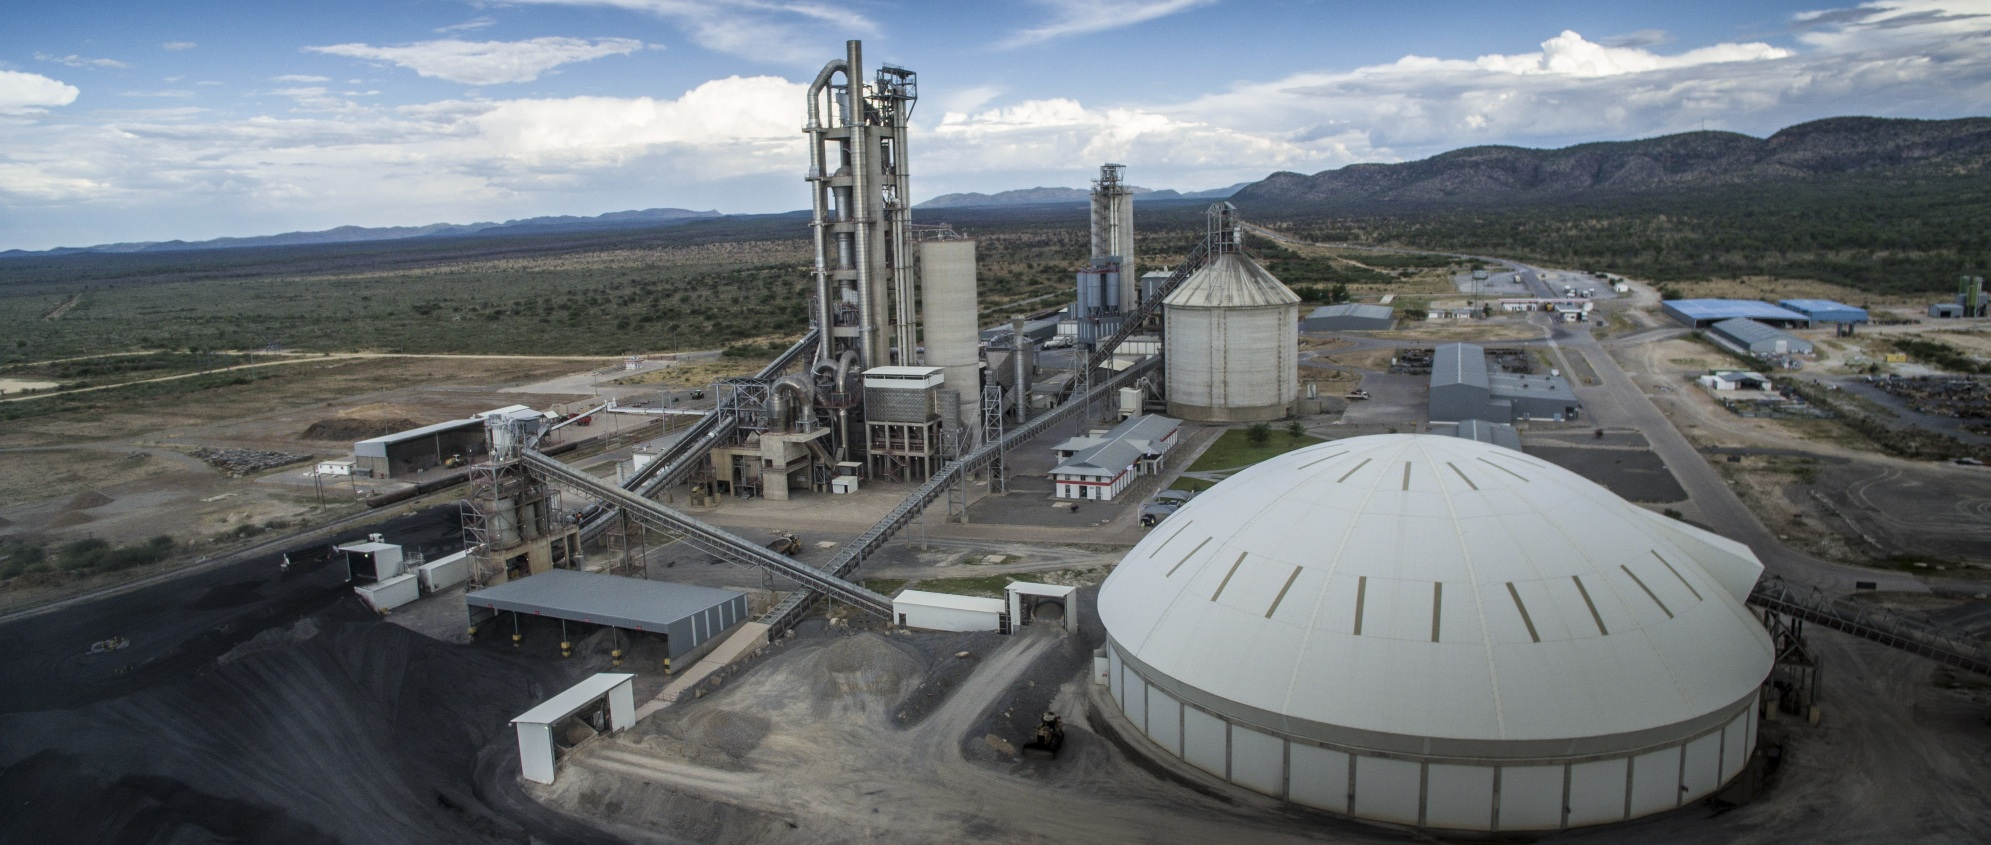 BEUMER Group: Third Packaging Line for Ohorongo Cement, Namibia